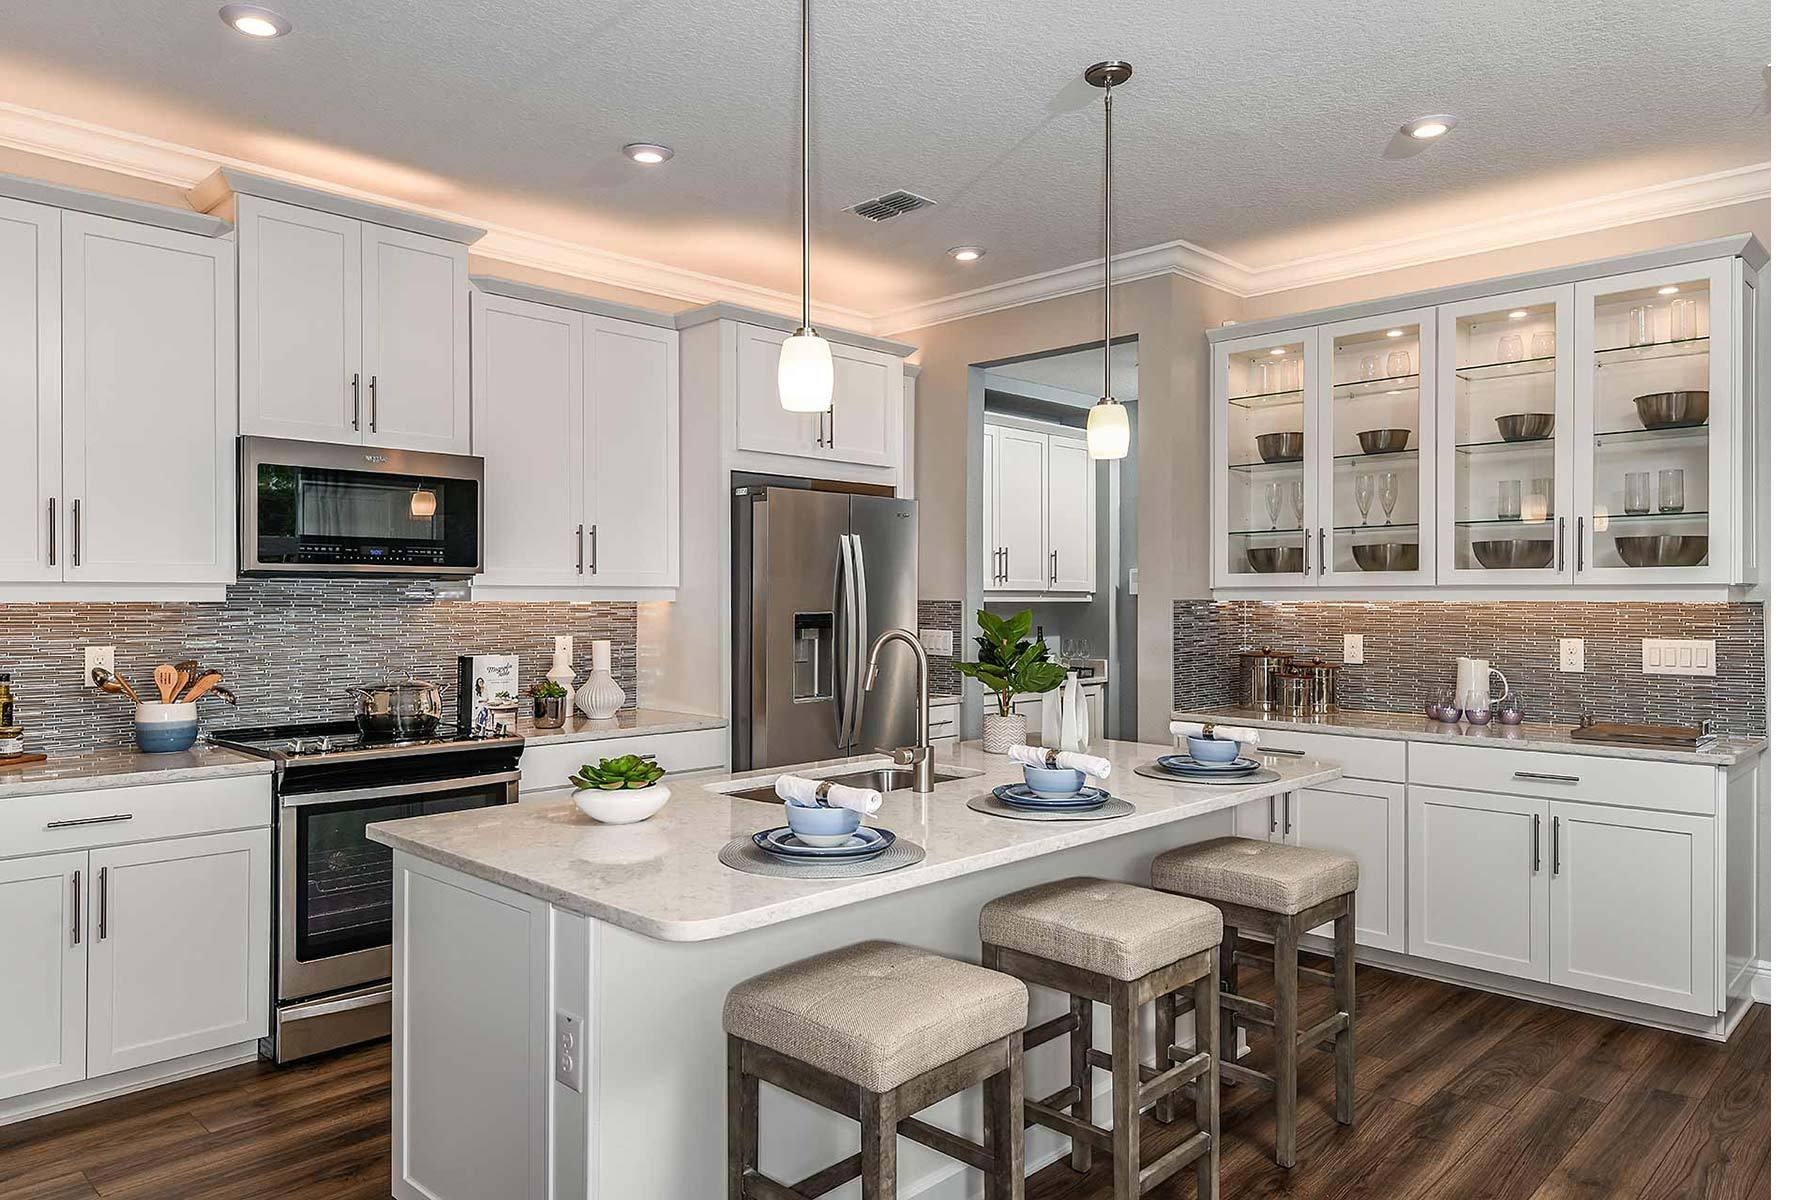 Wesley Chapel - Volanti:Coming soon - New townhomes